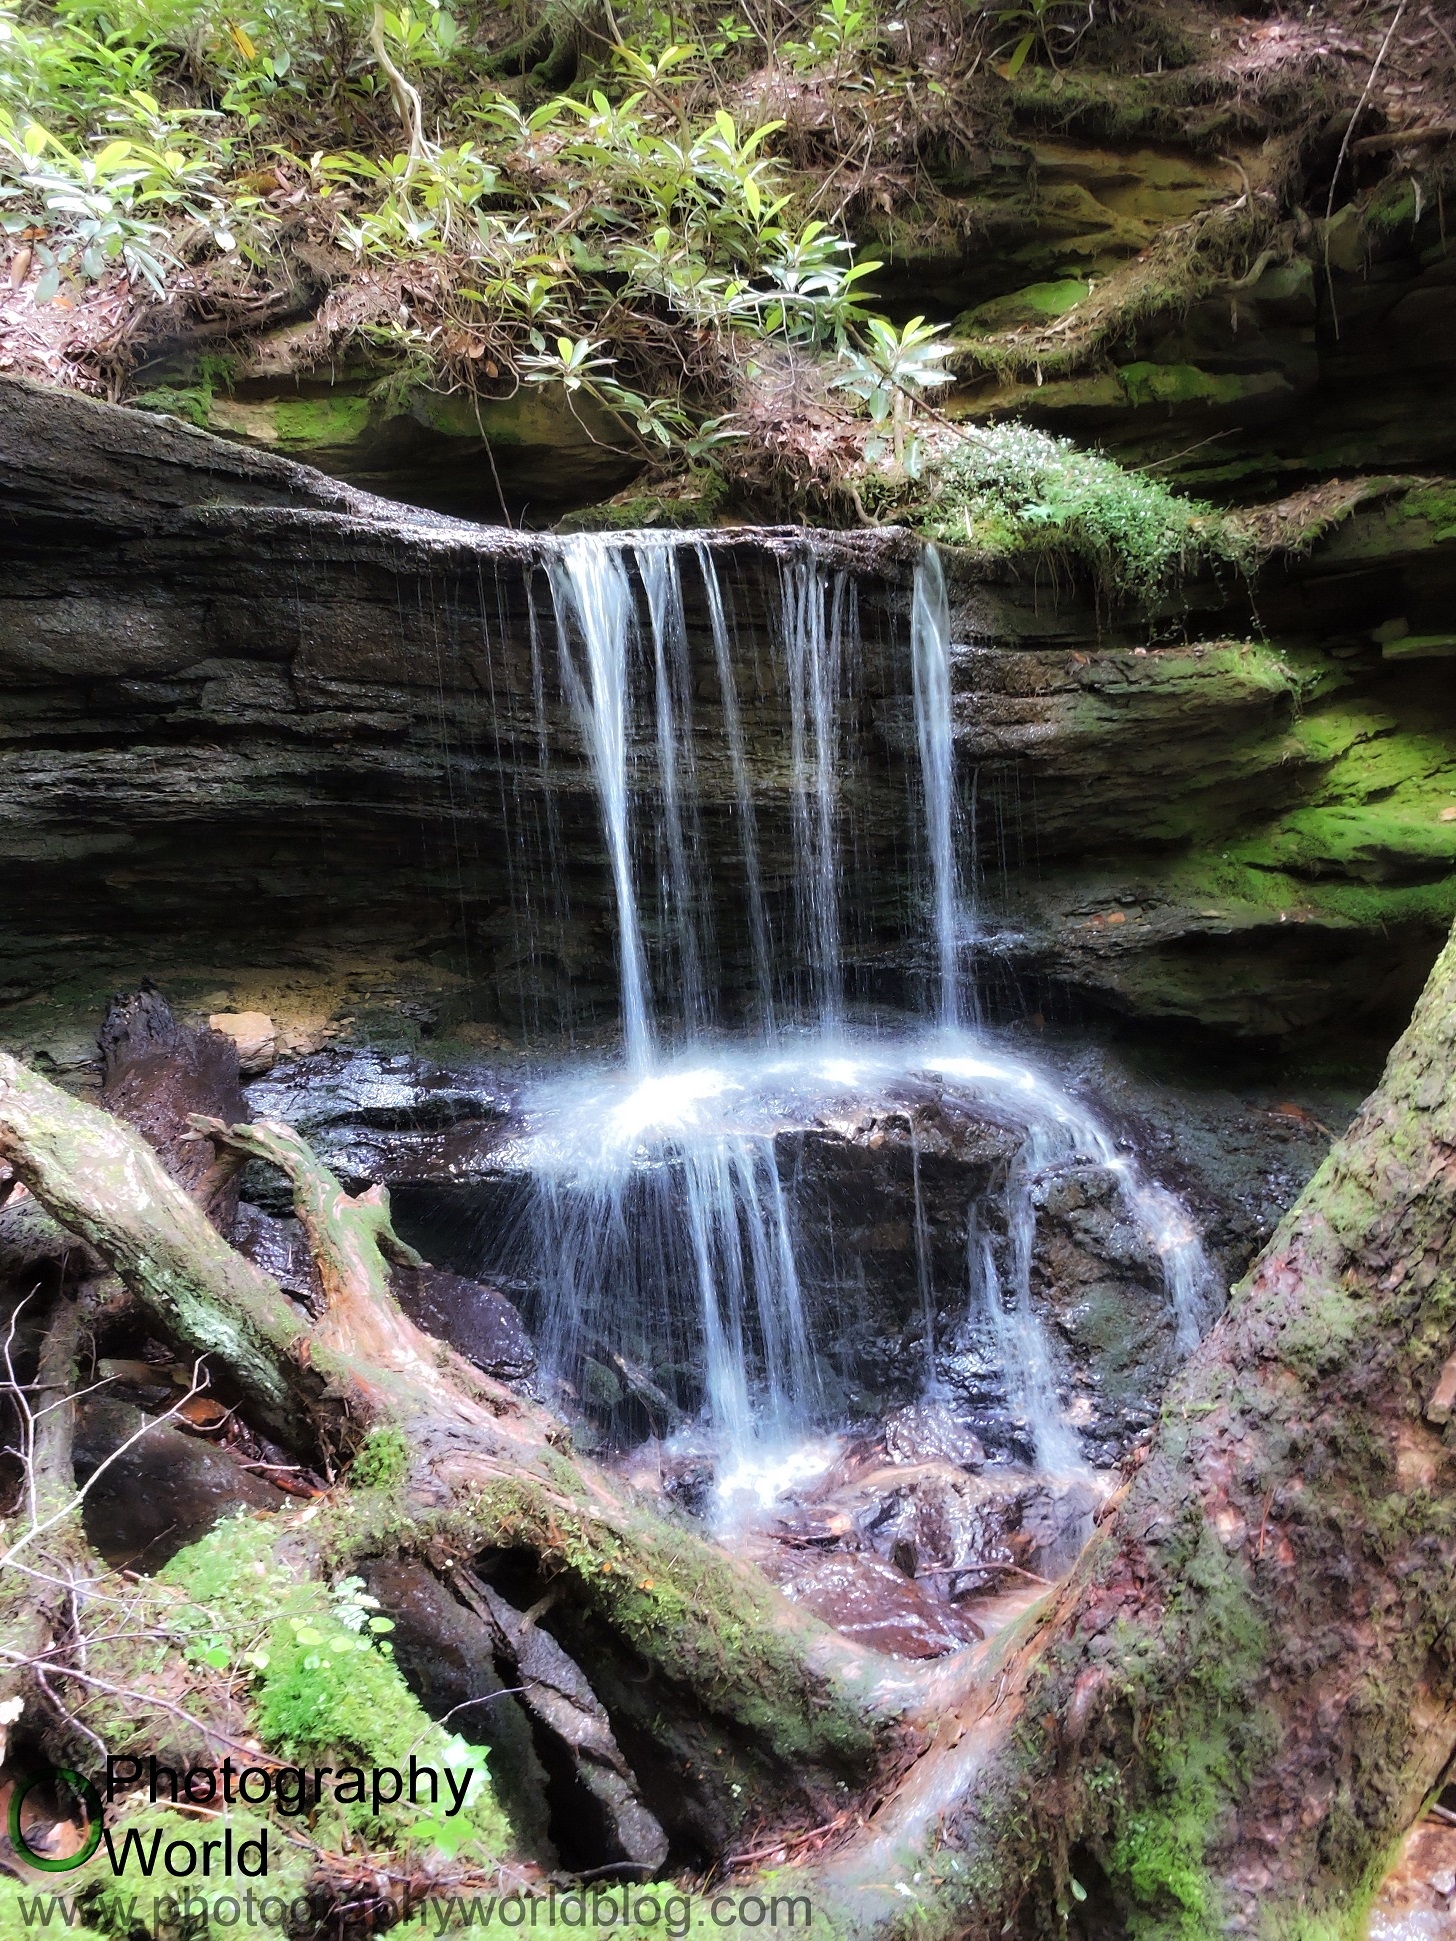 © Waterfall. Red River Gorge, KY. Photograph by Mina Thevenin. Photography World. www.photographyworld.org